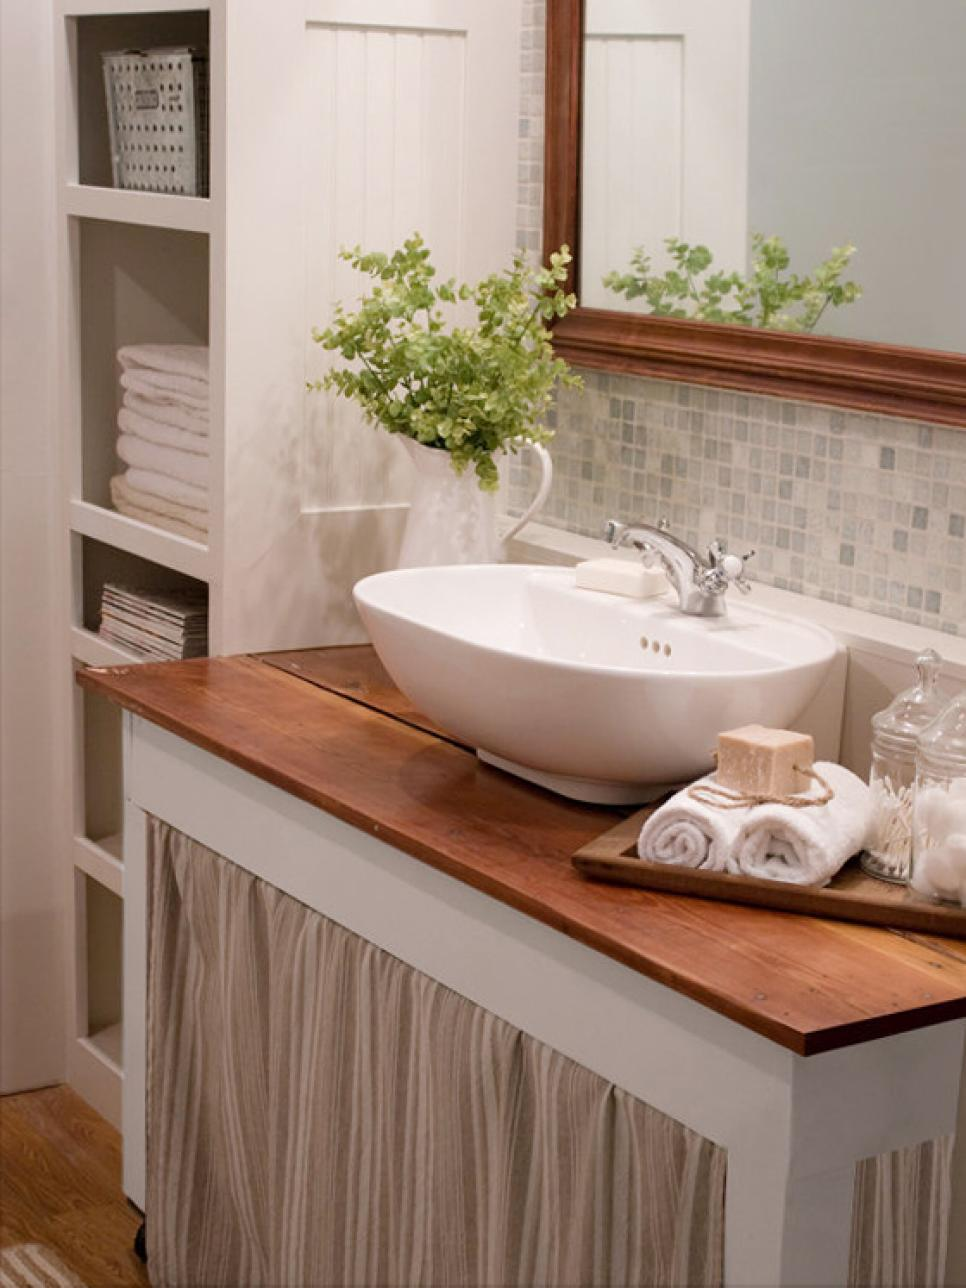 Bath Room Design 20 Small Bathroom Design Ideas  Hgtv